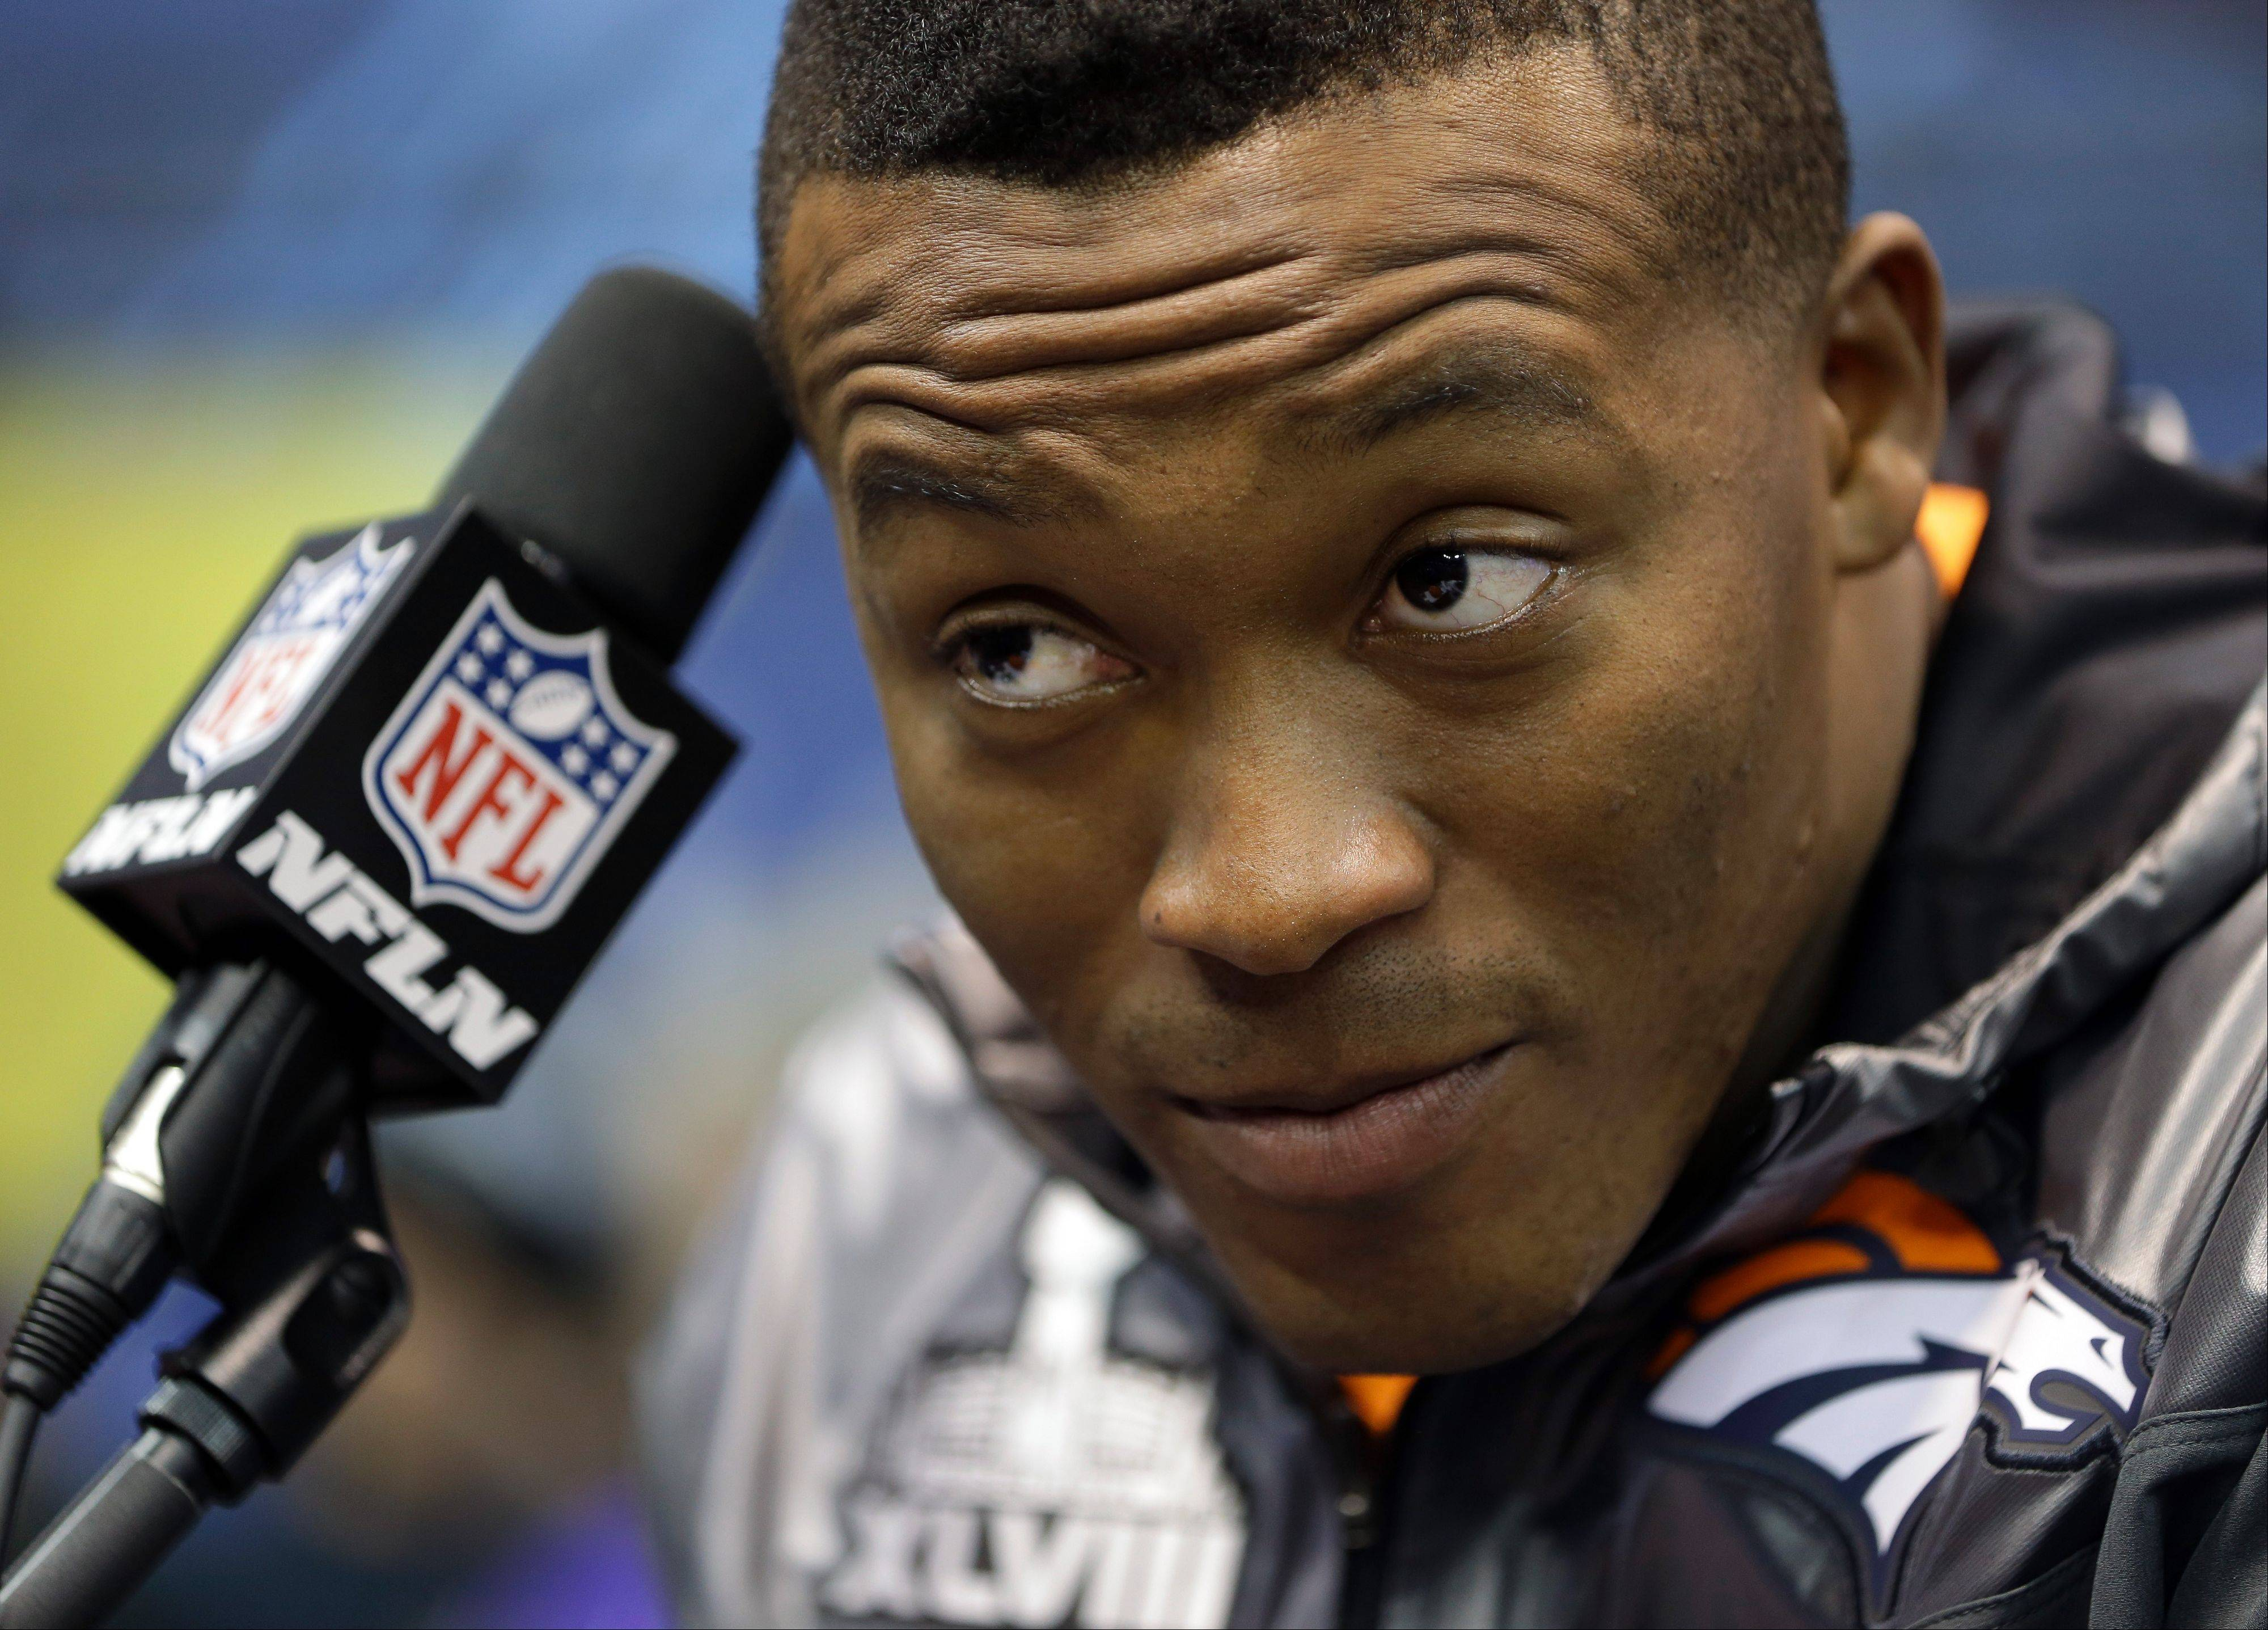 Denver Broncos' Demaryius Thomas listens to a question during media day for the NFL Super Bowl XLVIII football game Tuesday, Jan. 28, 2014, in Newark, N.J.